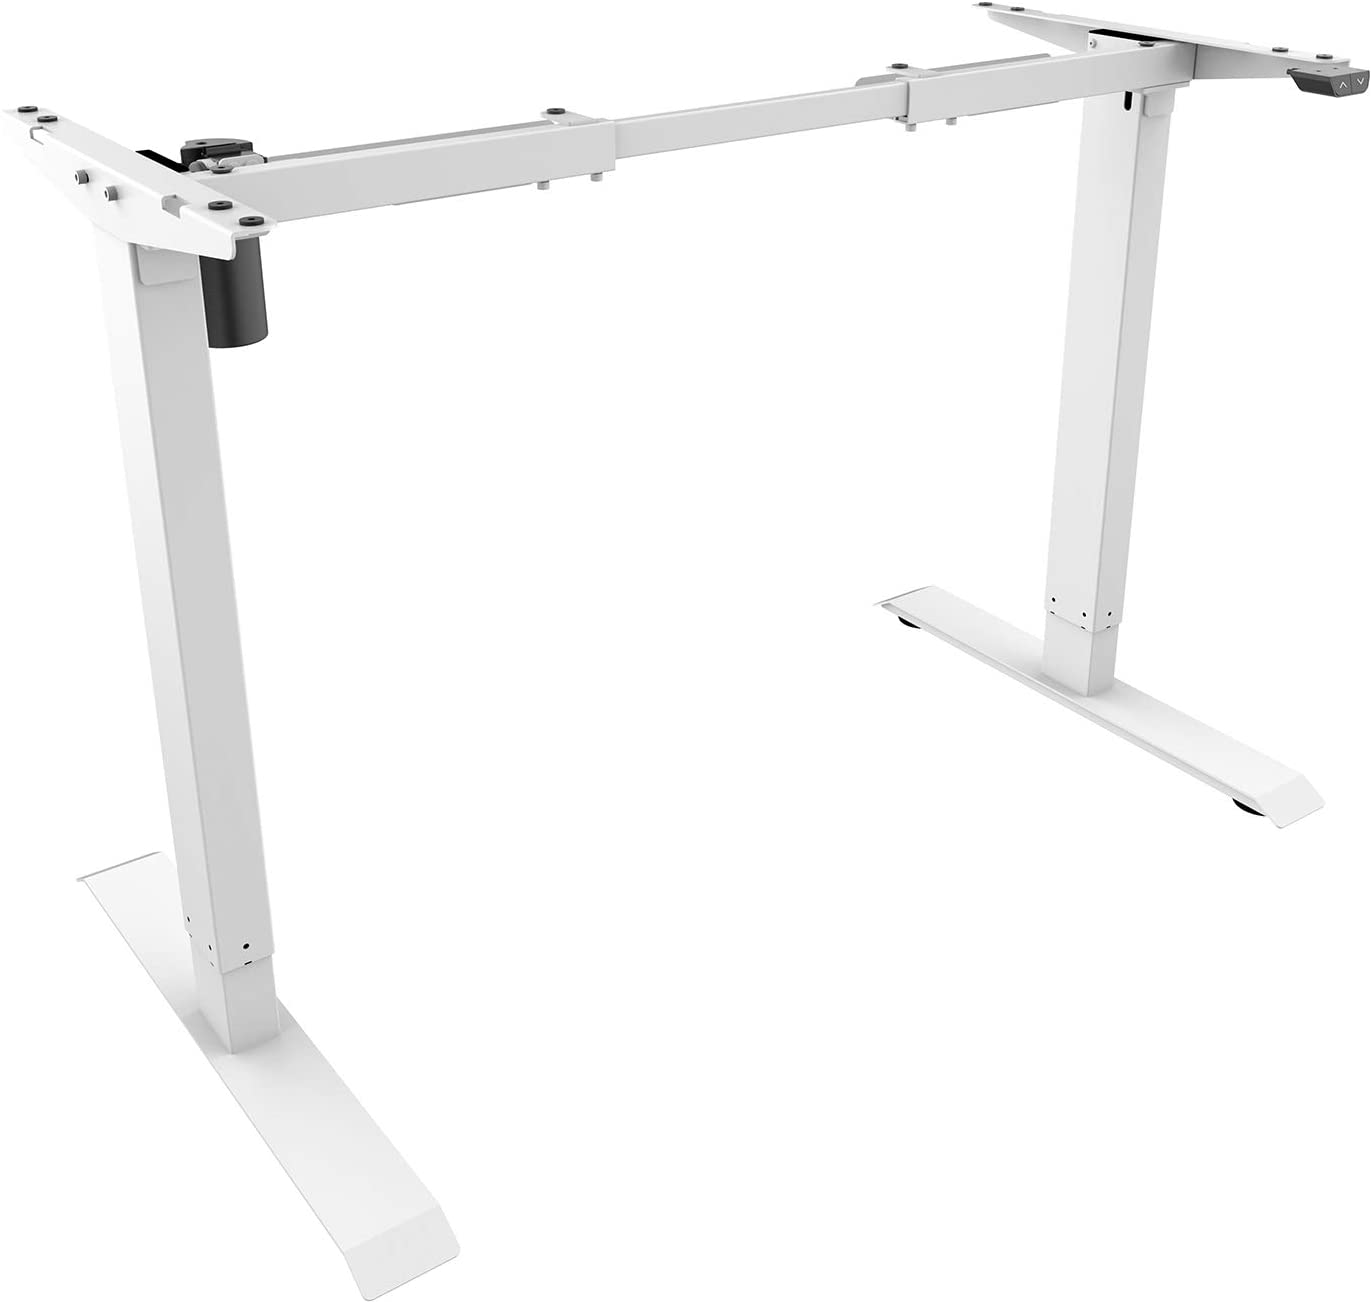 (EU EXCLUSIVE) PUTORSEN® ES12W-E Electric Standing Desk Ergonomic Height Adjustable Sit Stand Desk Frame Two-Stage Heavy Duty Steel Stand up Desk with Up Down Keyboard (Frame Only - White)